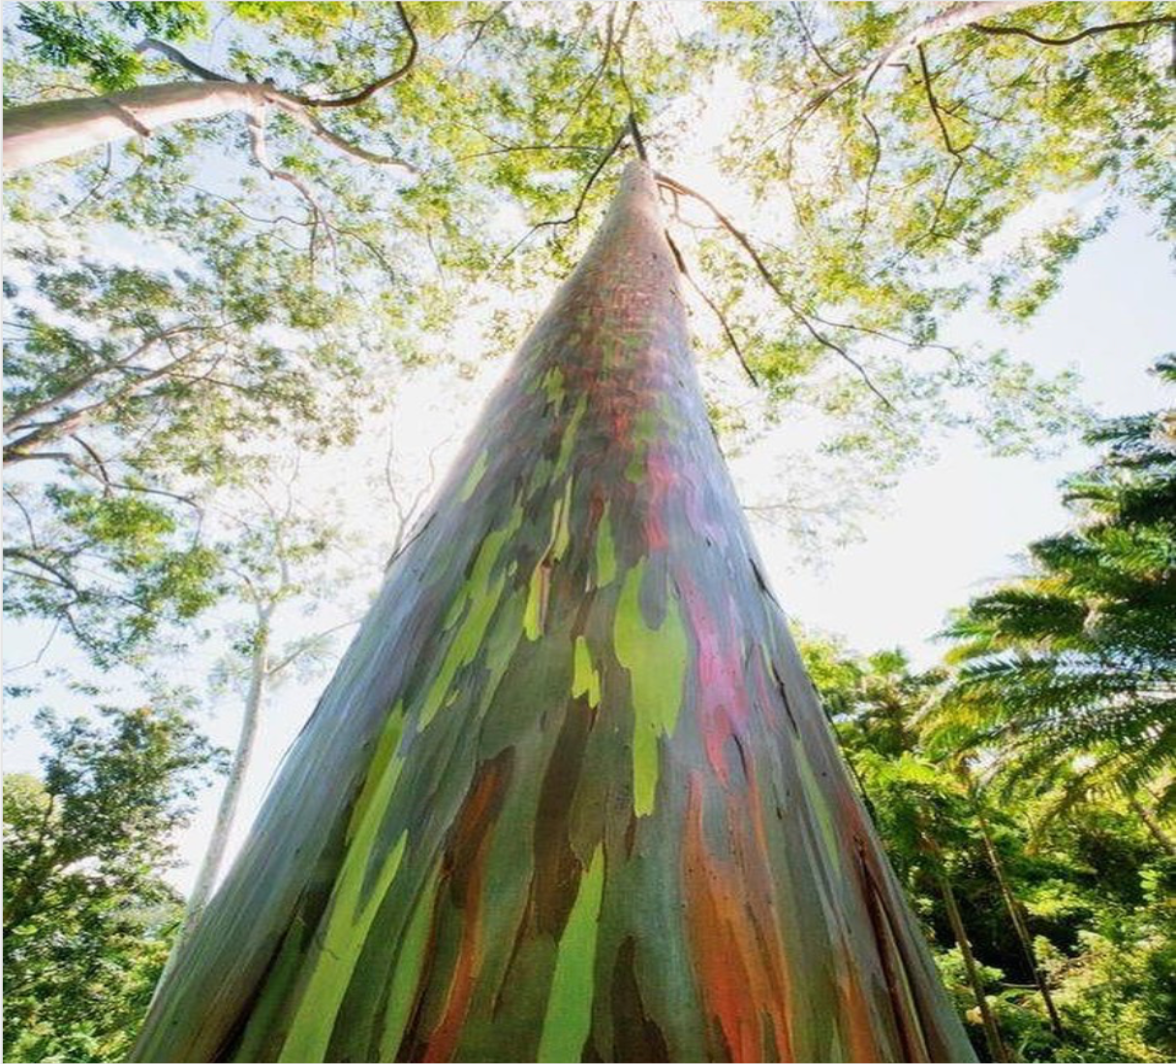 Tall tree with rainbow bark